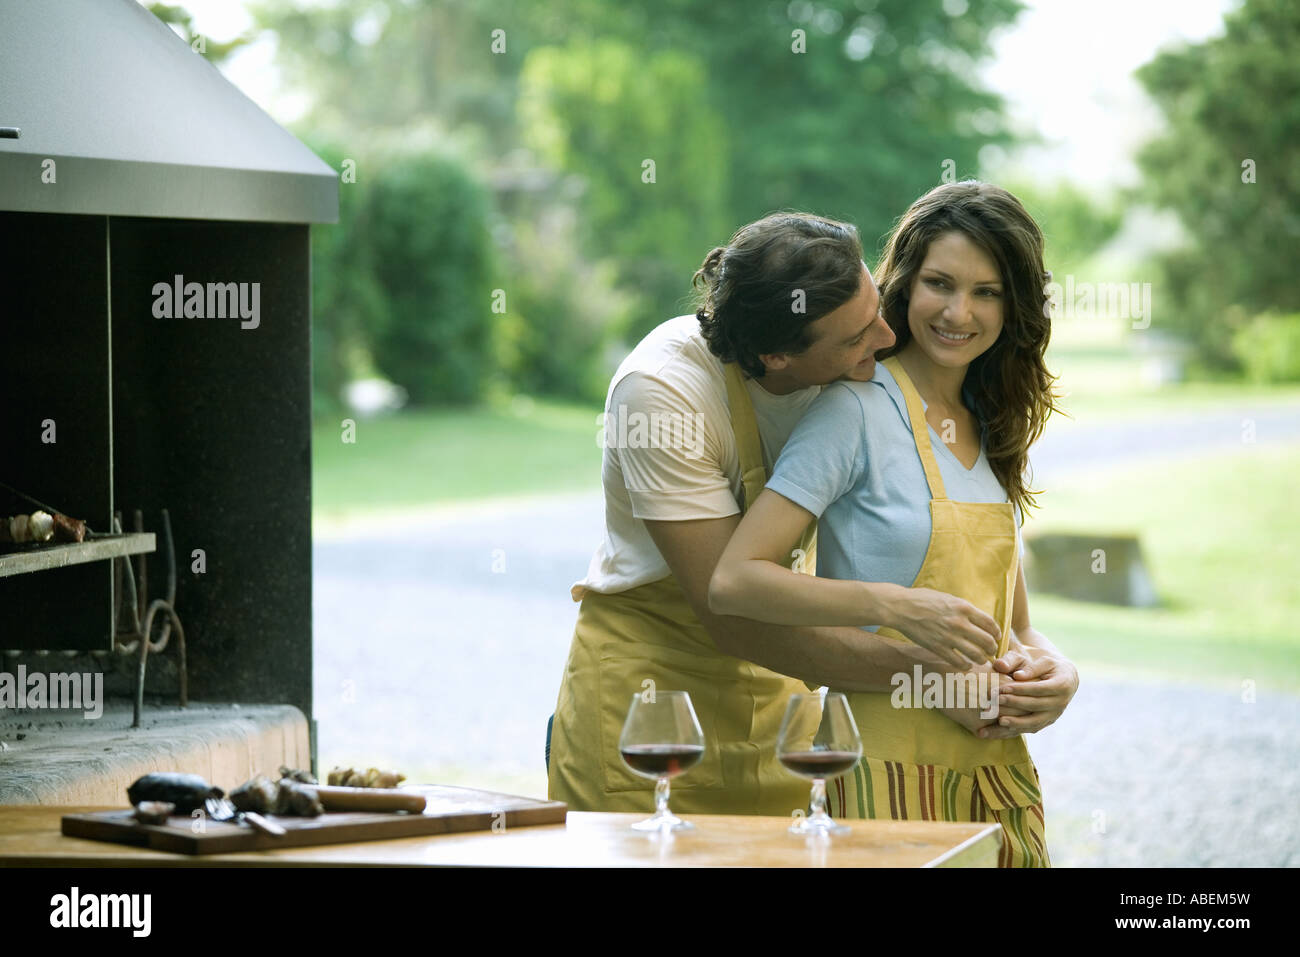 Couple standing near outside wood oven, man holding woman from behind, putting head on her shoulder - Stock Image